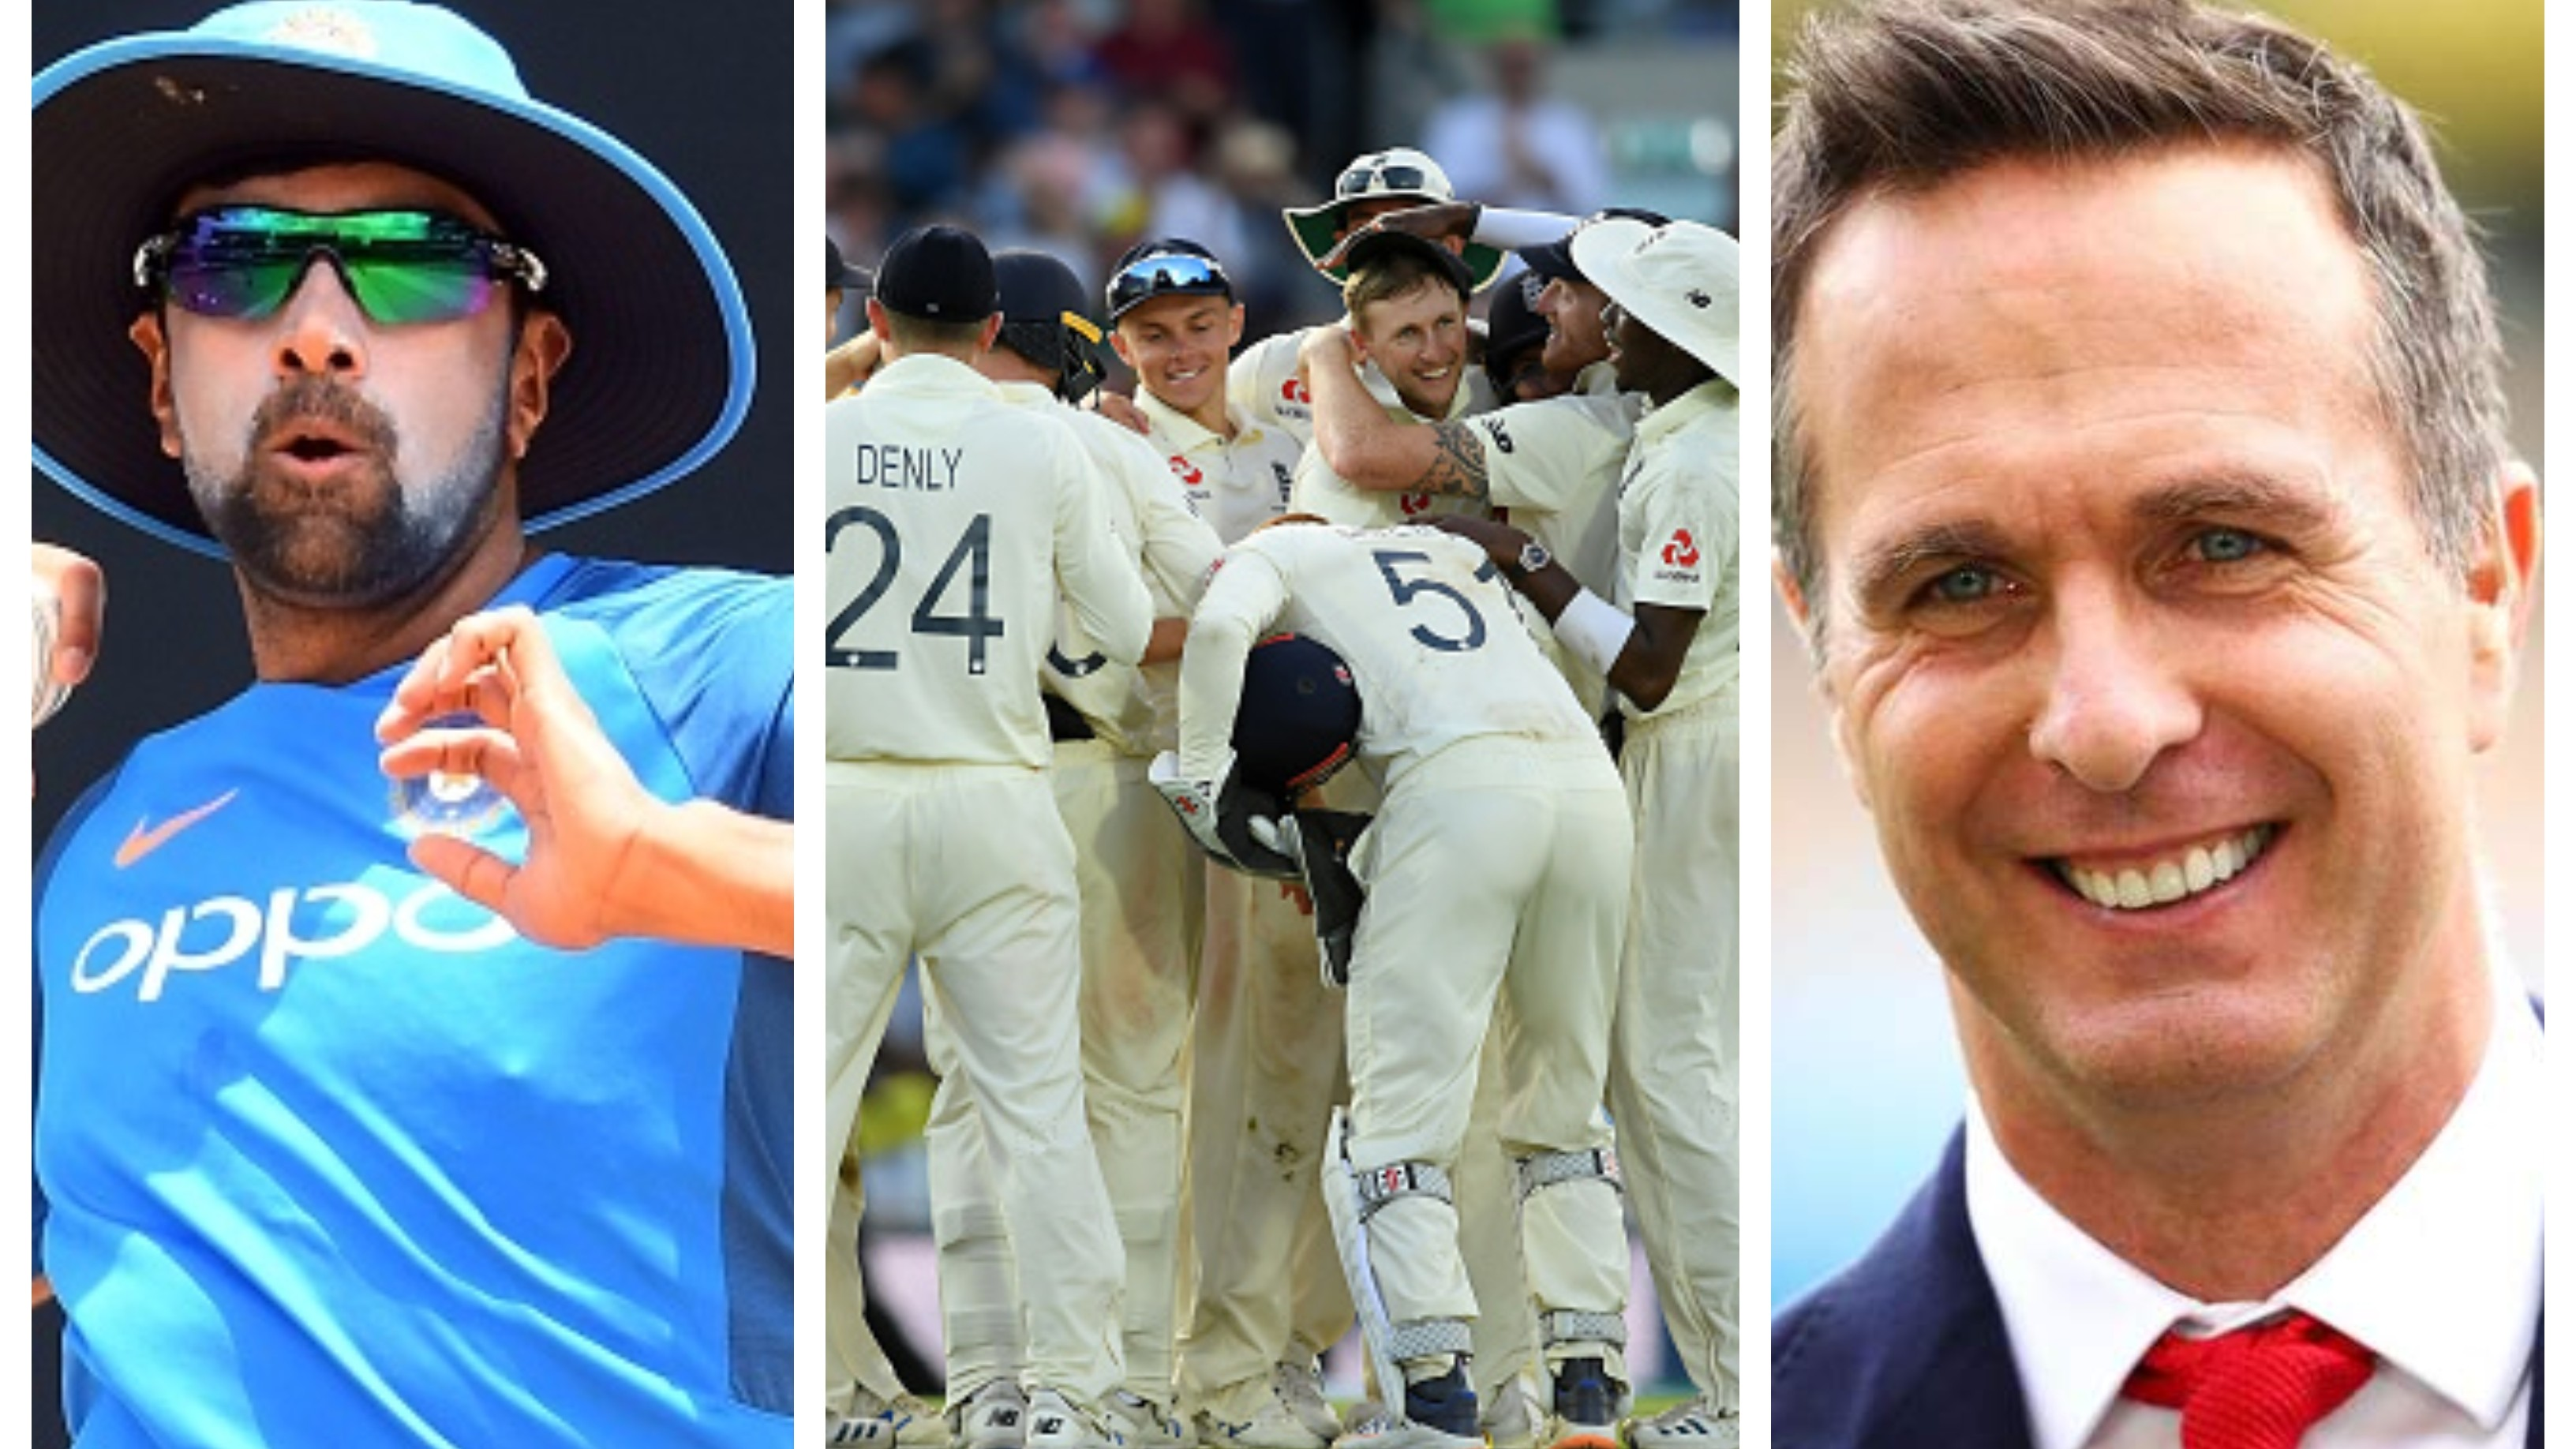 ASHES 2019: Cricket fraternity reacts as England beat Australia in the 5th Test to draw series